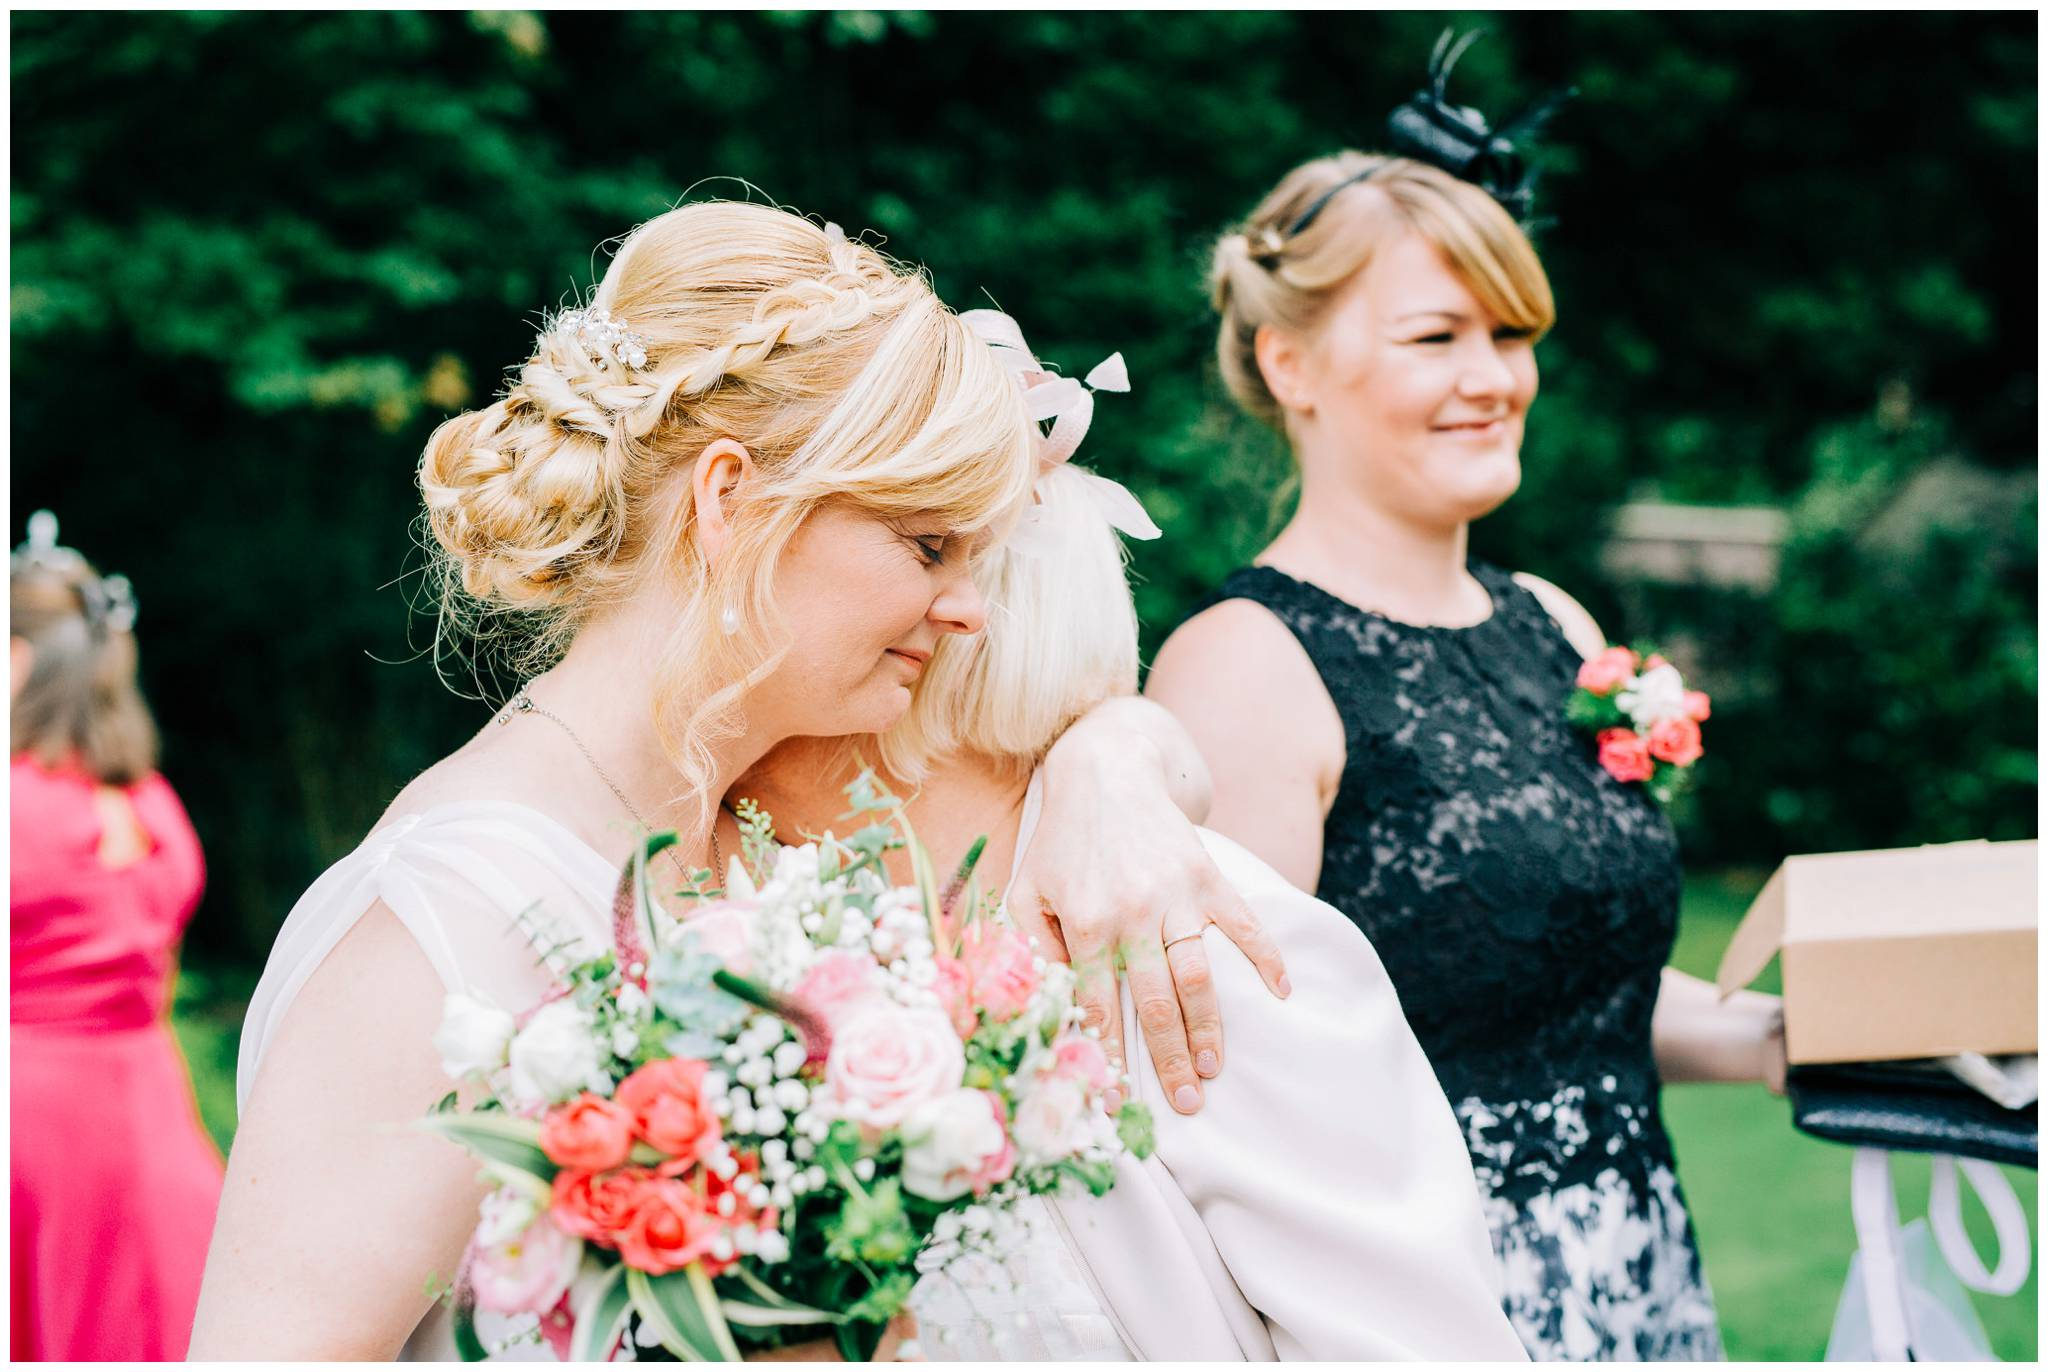 Natural wedding photography Manchester - Clare Robinson Photography_0193.jpg